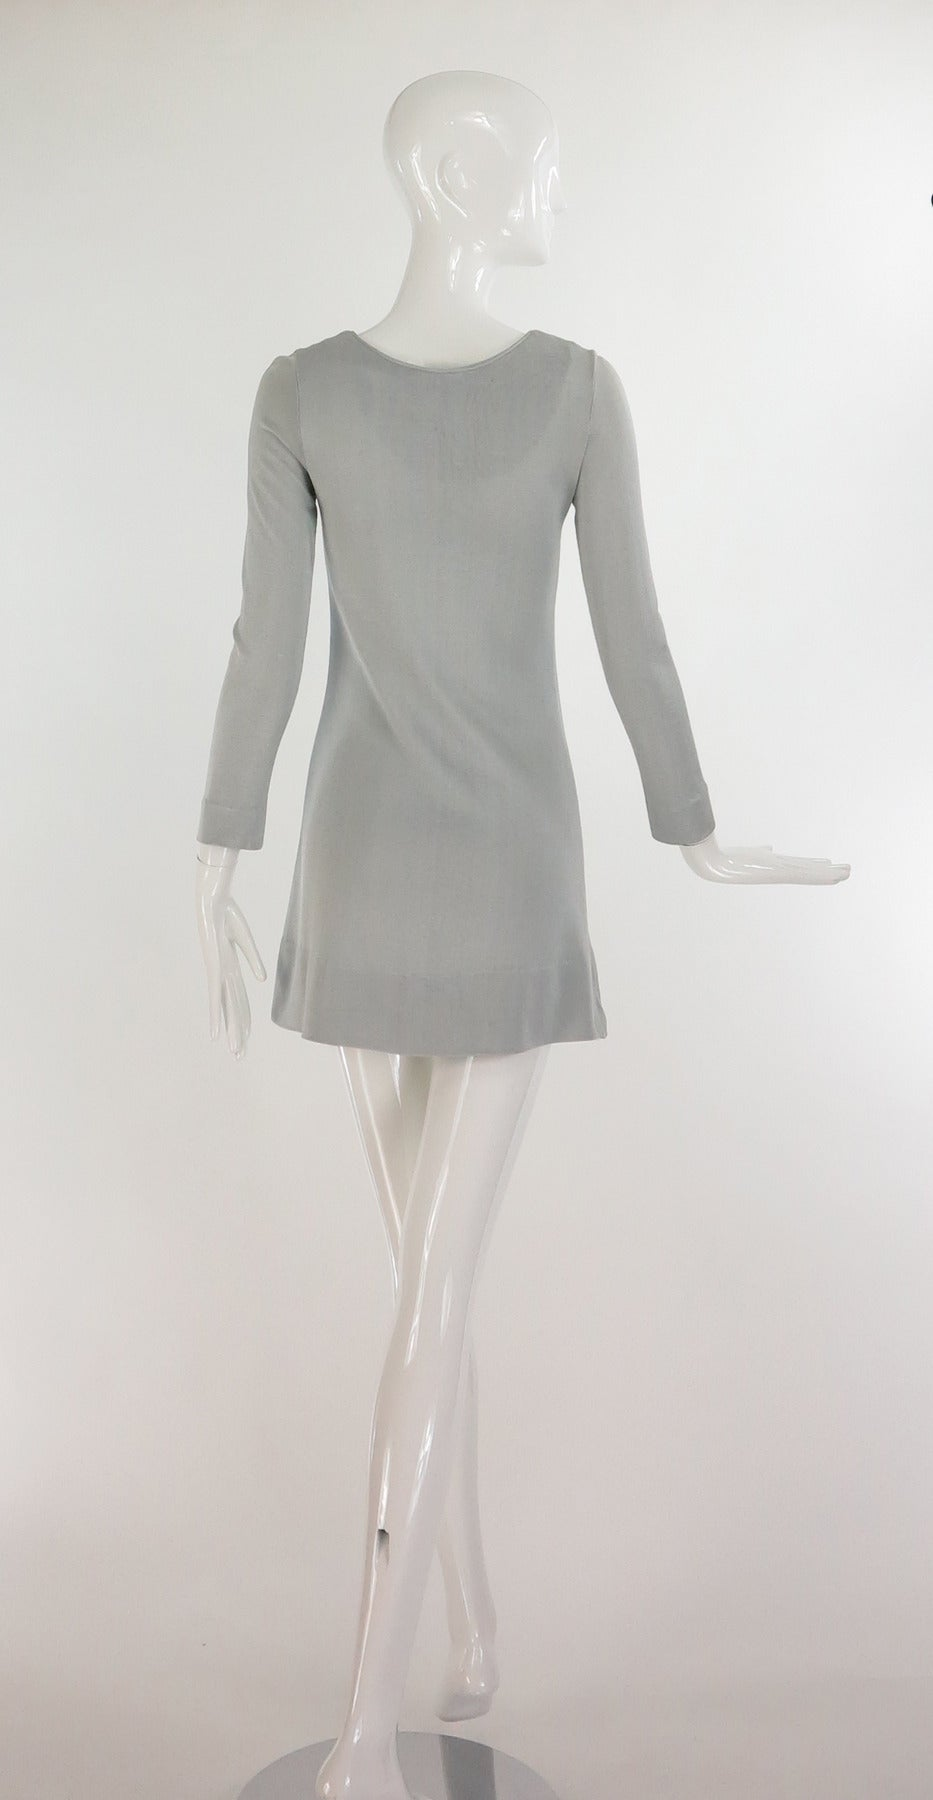 Paraphernalia by Betsey Johnson 1960s silver metallic knit mini dress 5